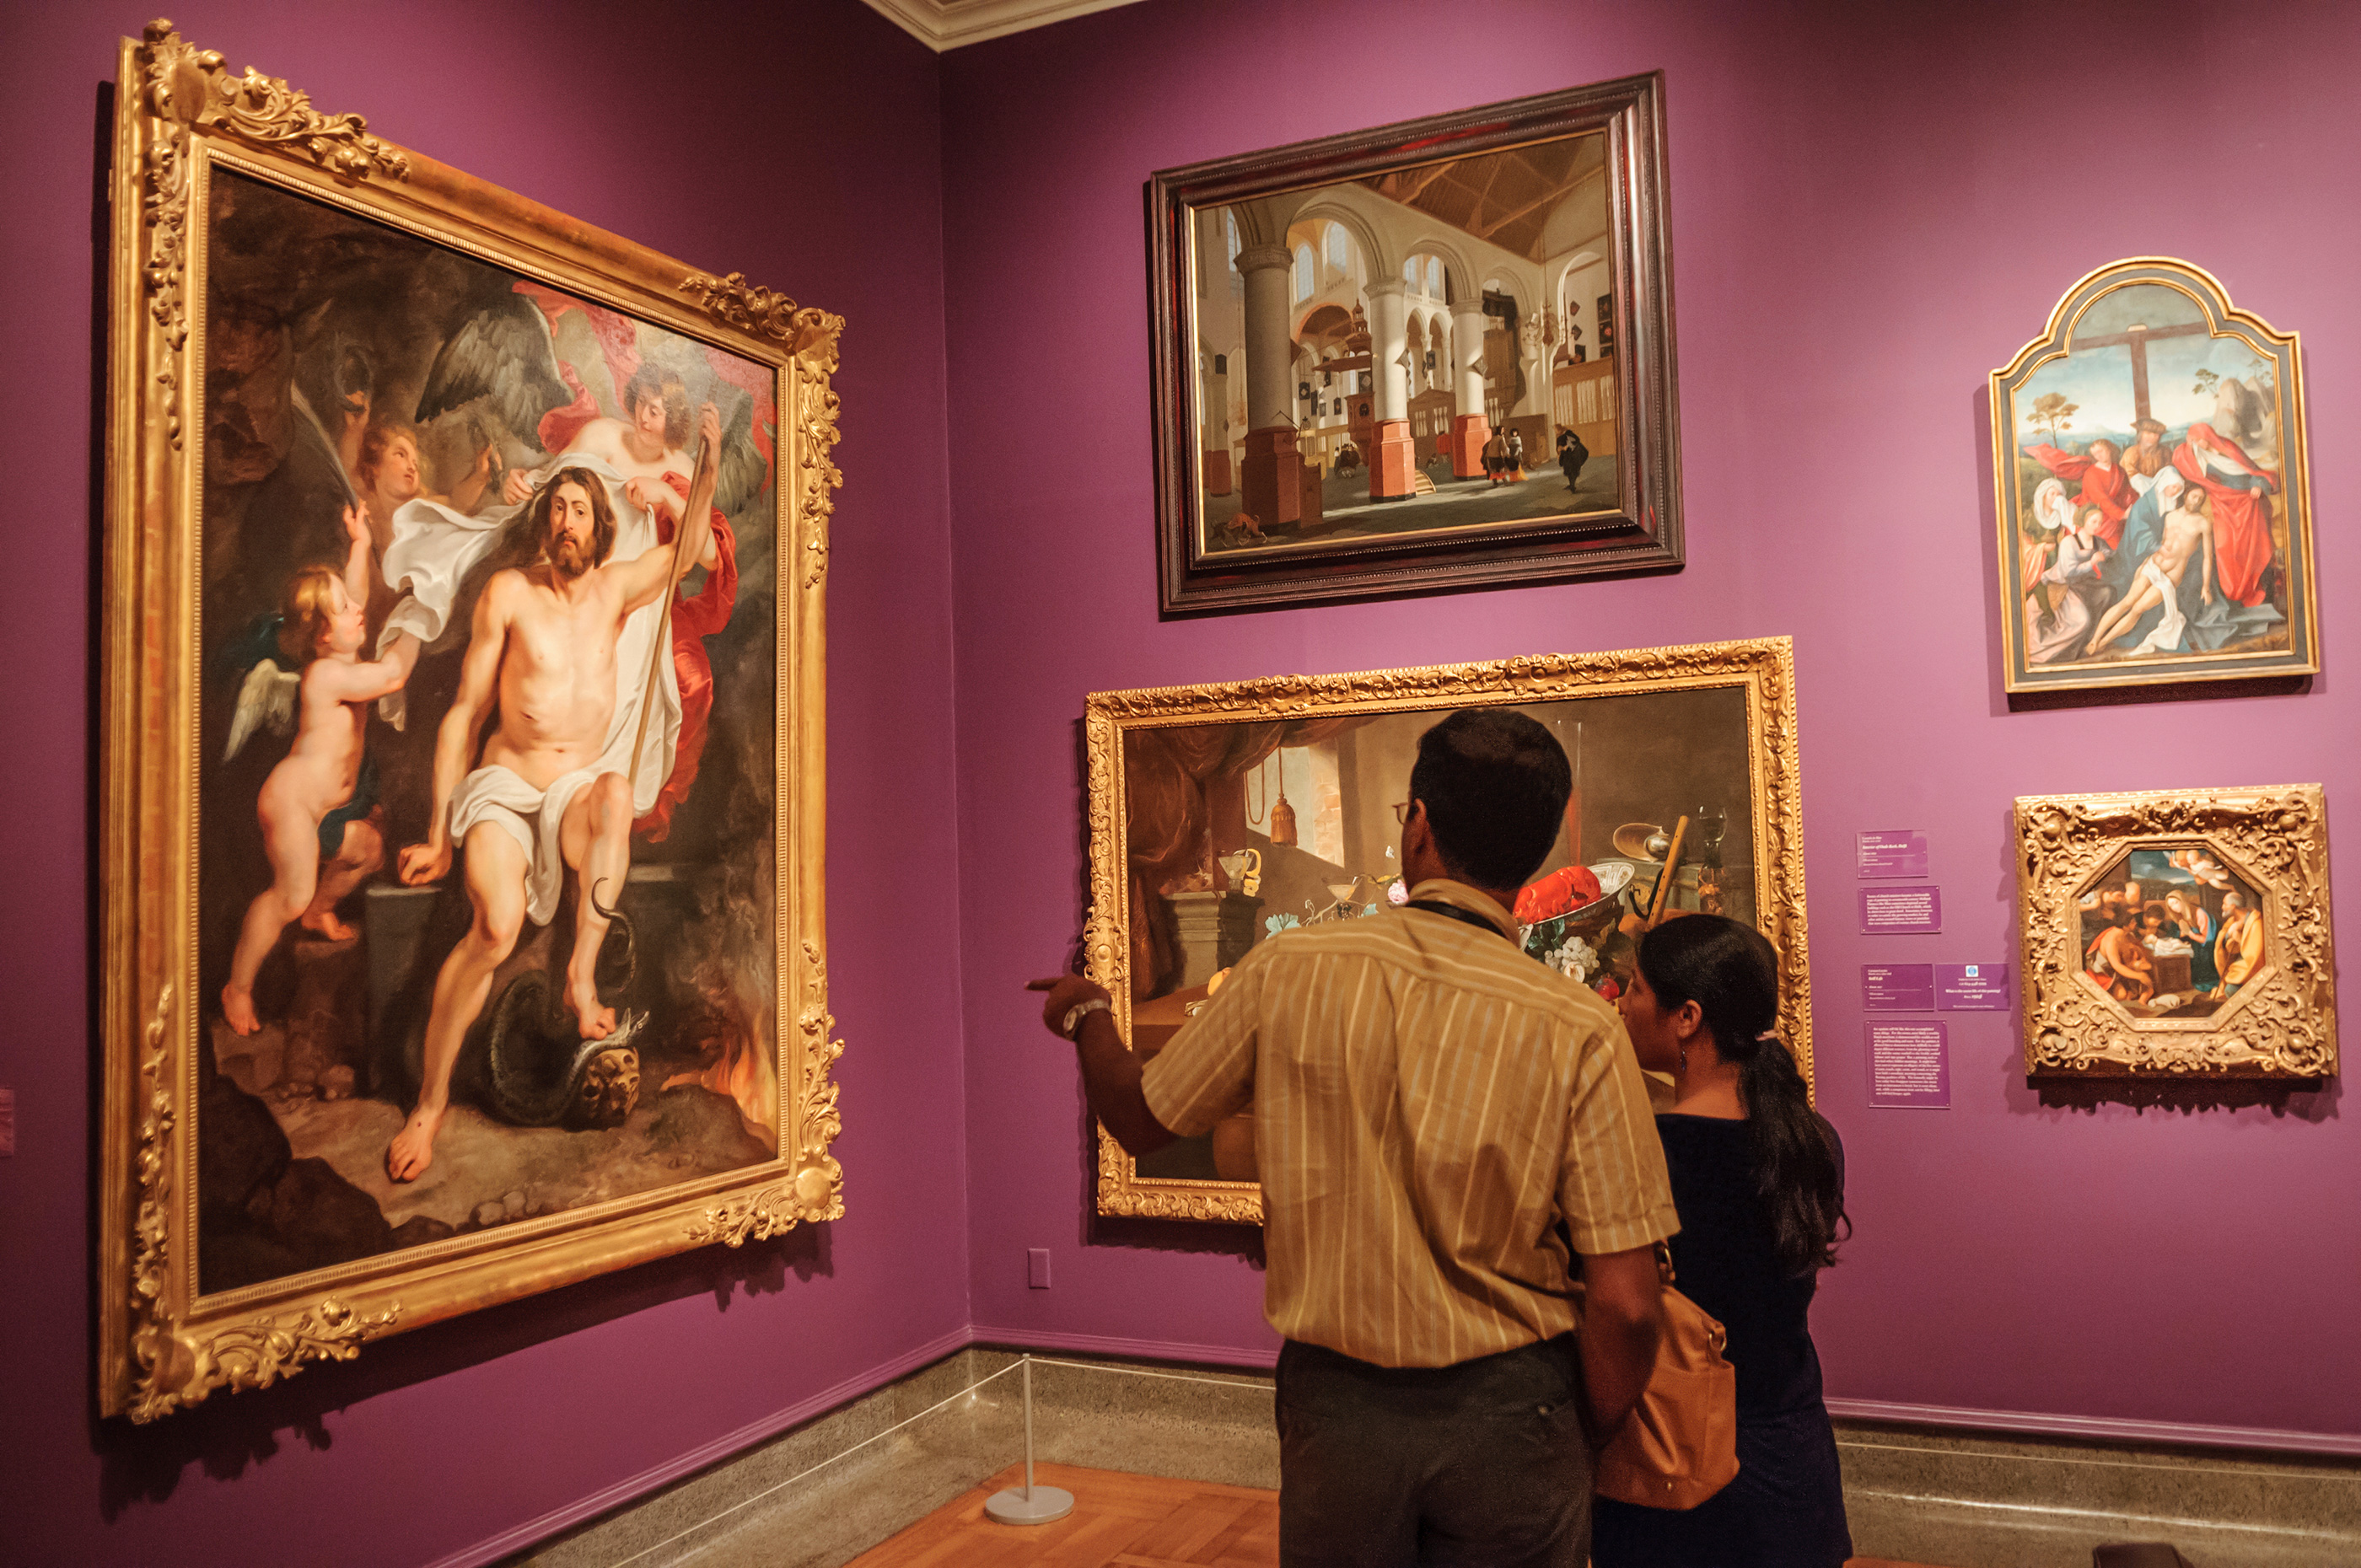 Spend a picture perfect day at the Columbus Museum of Art.